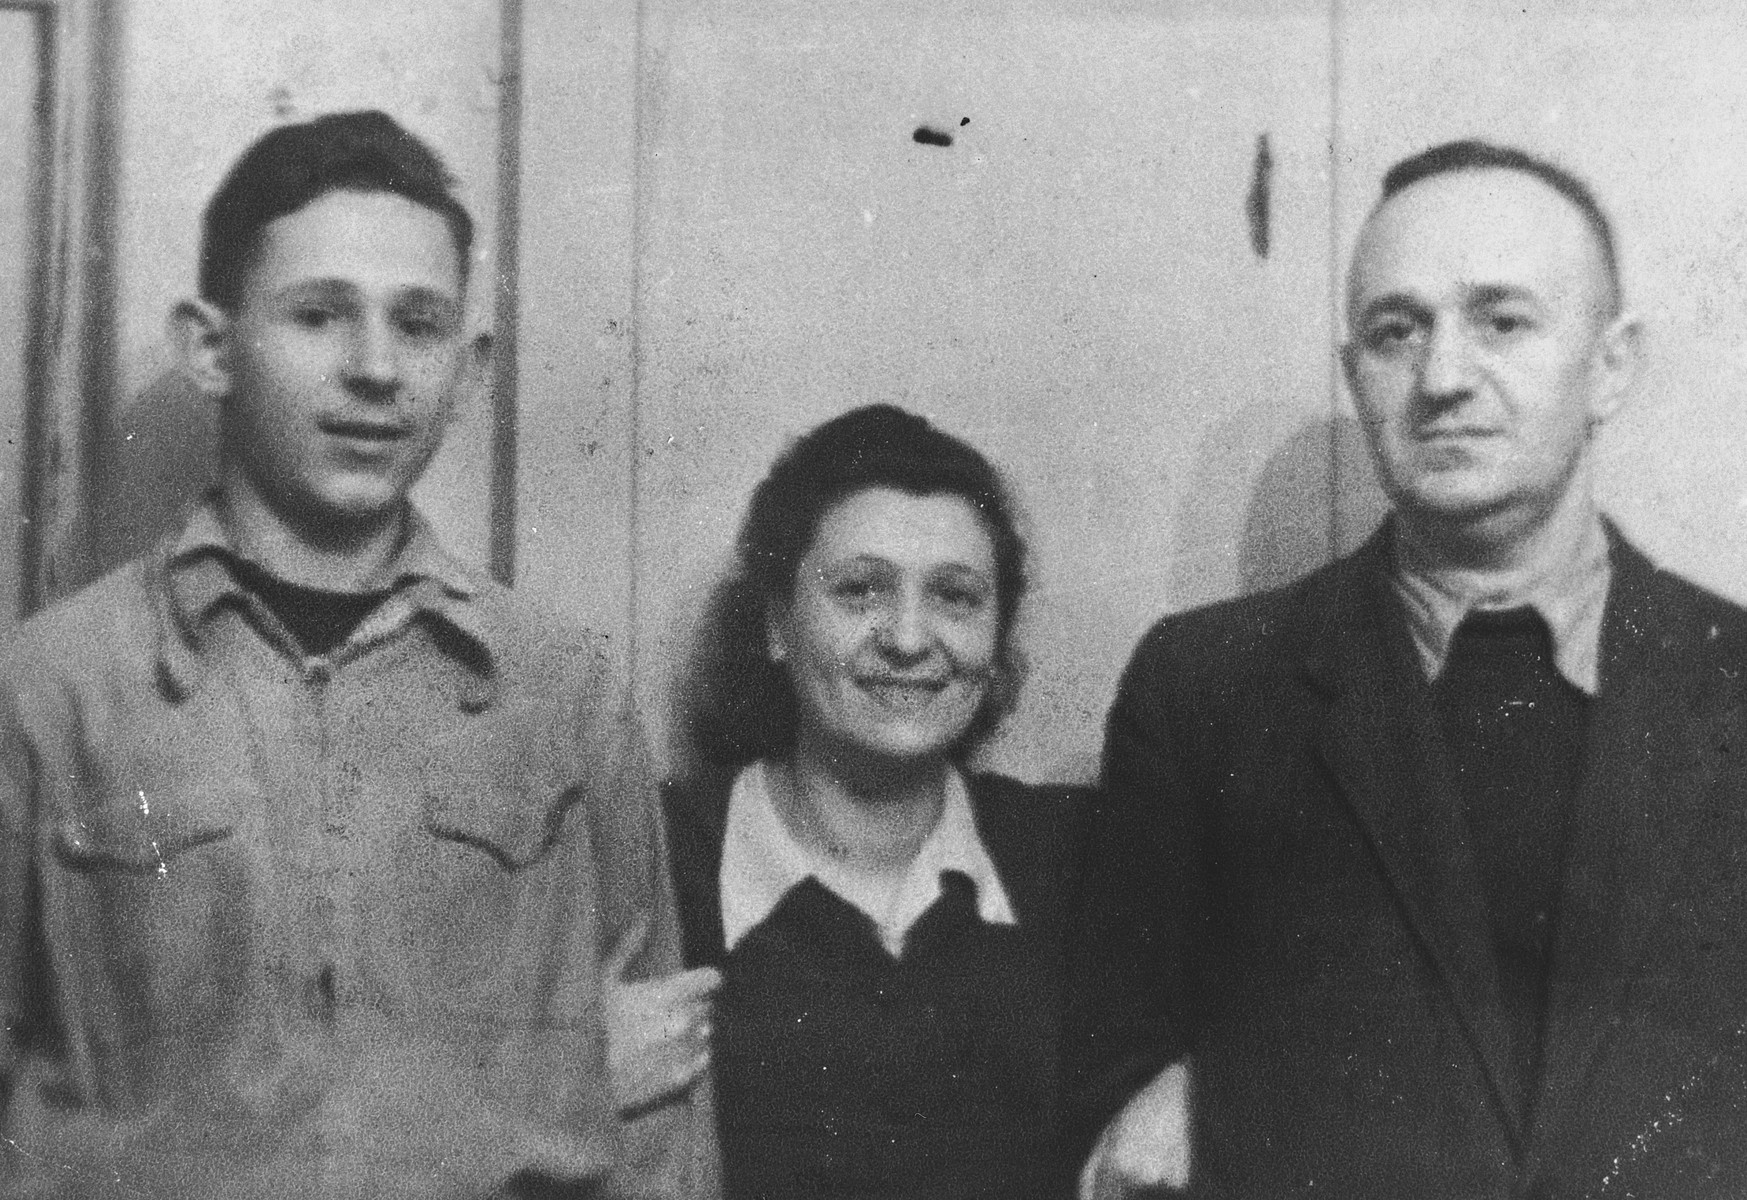 Portrait of the Beigel family in the Vilna ghetto.  Pictured from left to right are: Wilhelm, Liza and Ferdinand Beigel.